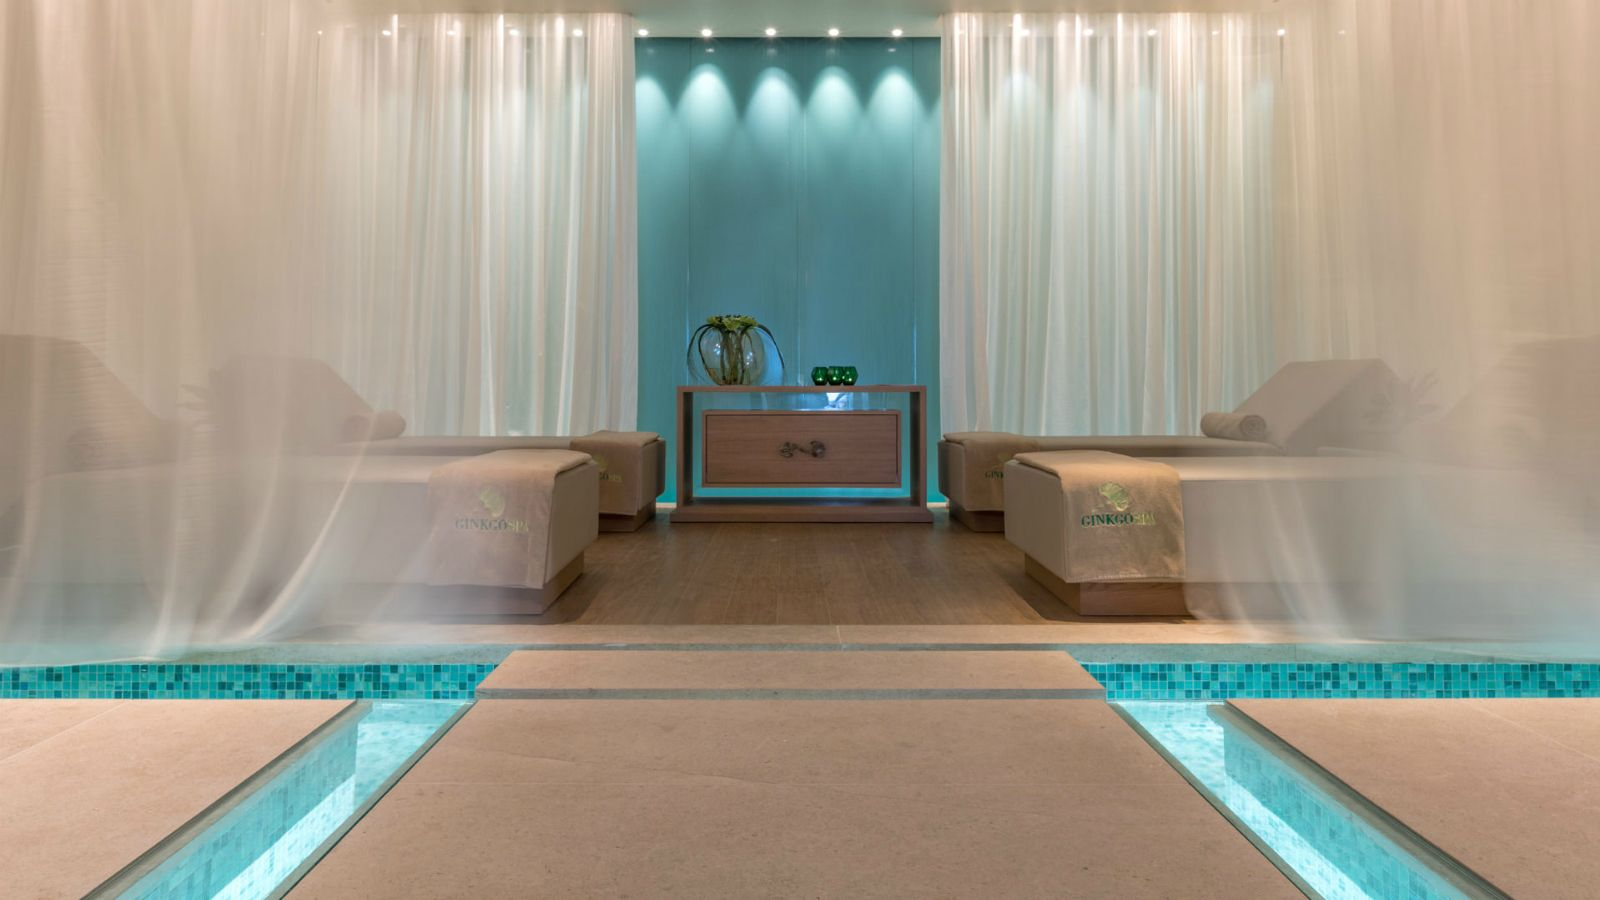 Relax area at the new Ginkgo Spa at Santa Marina Resort Mykonos The Luxury Collection